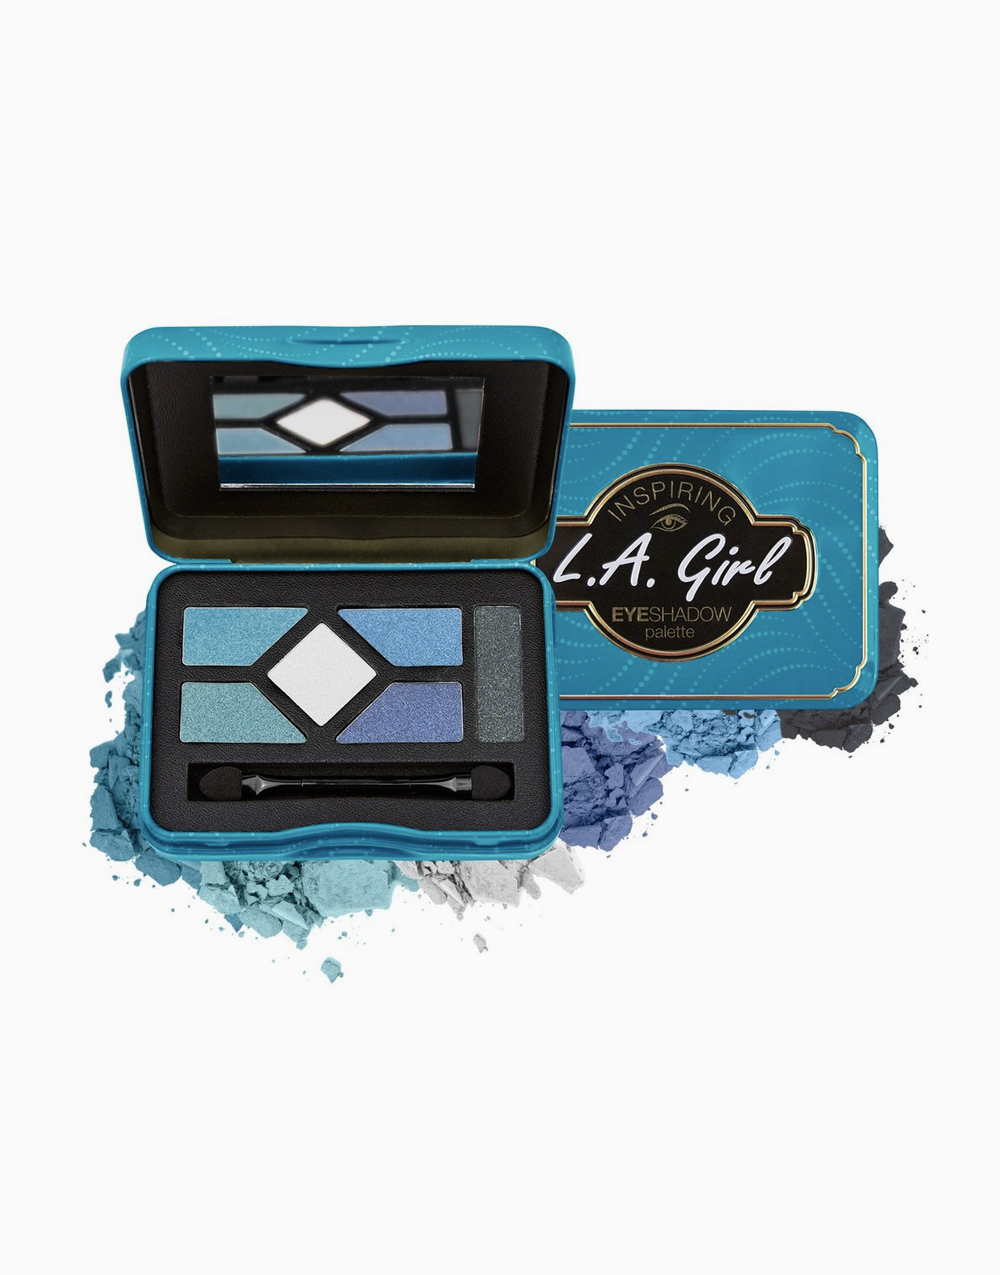 Inspiring Eyeshadow Palette by L.A. Girl | Fabulous & Fearless